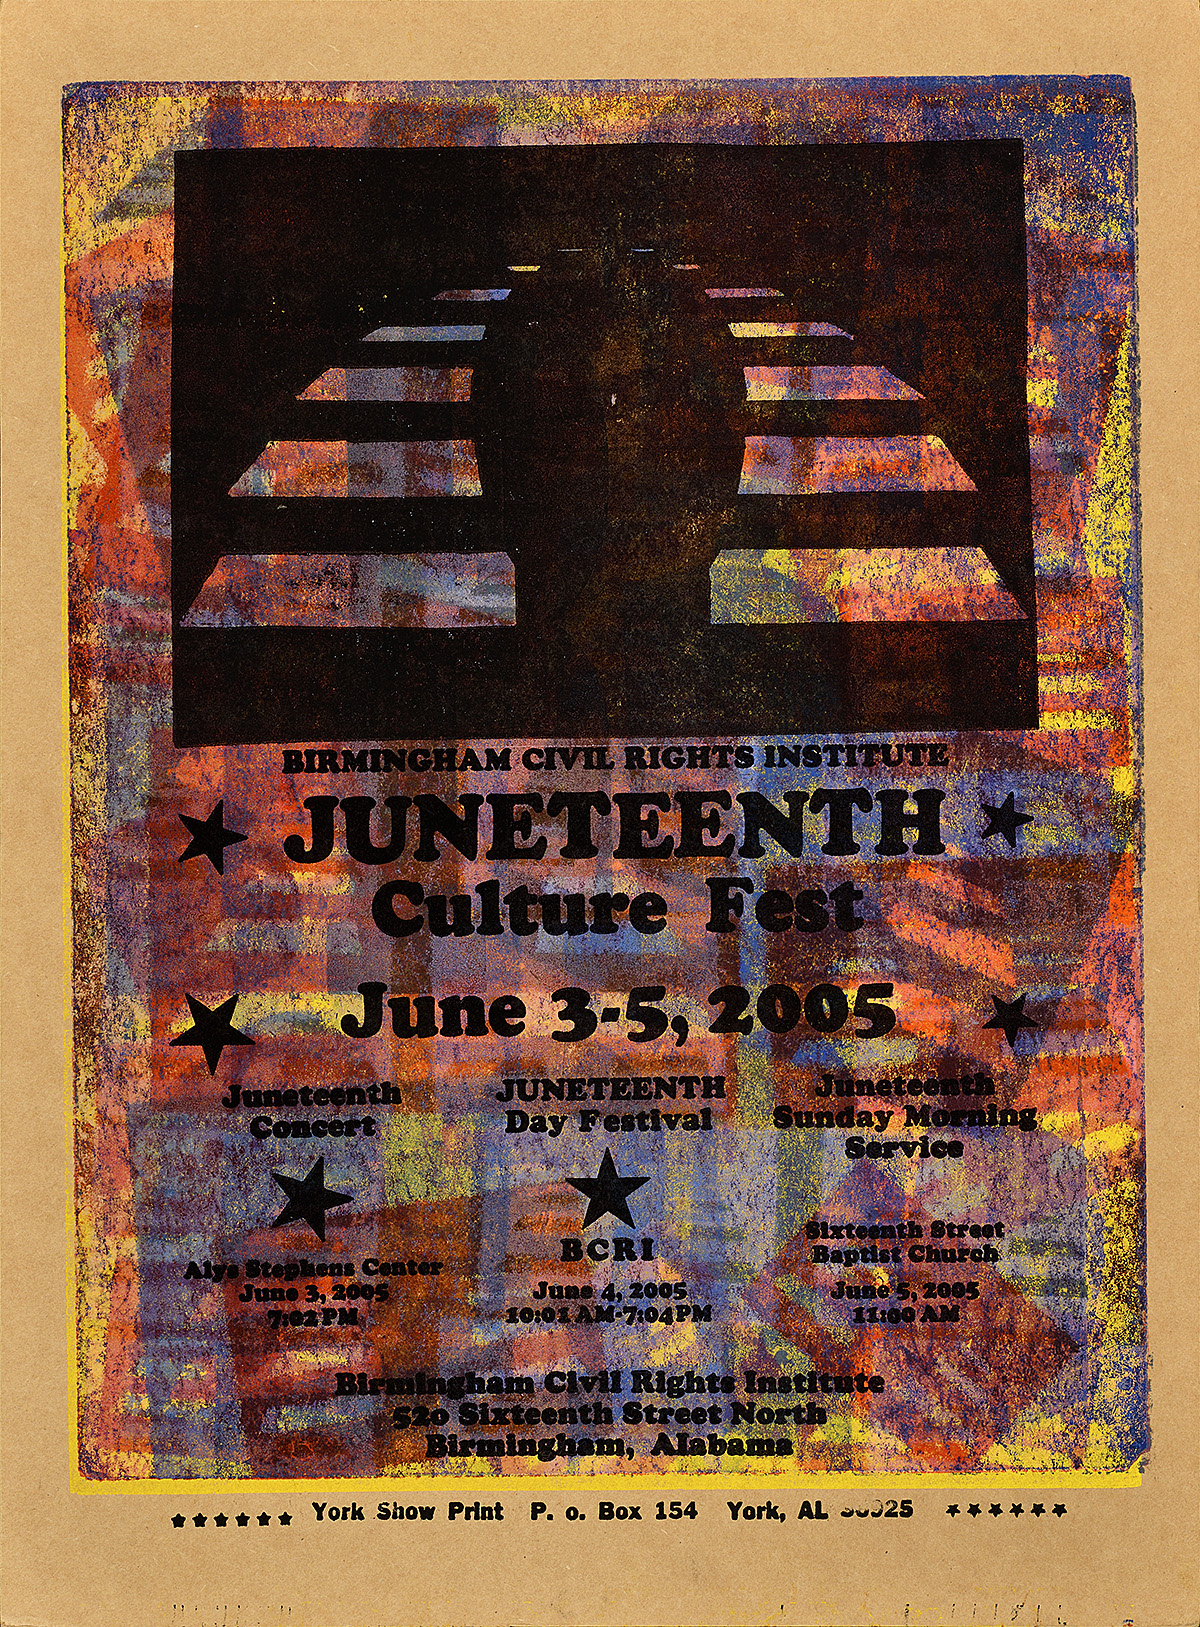 letterpress poster with a dark multicolored background. the silhouette of a figure against a striped backdrop fills the upper half of the page. the lower half lists three day's worth of events around juneteenth